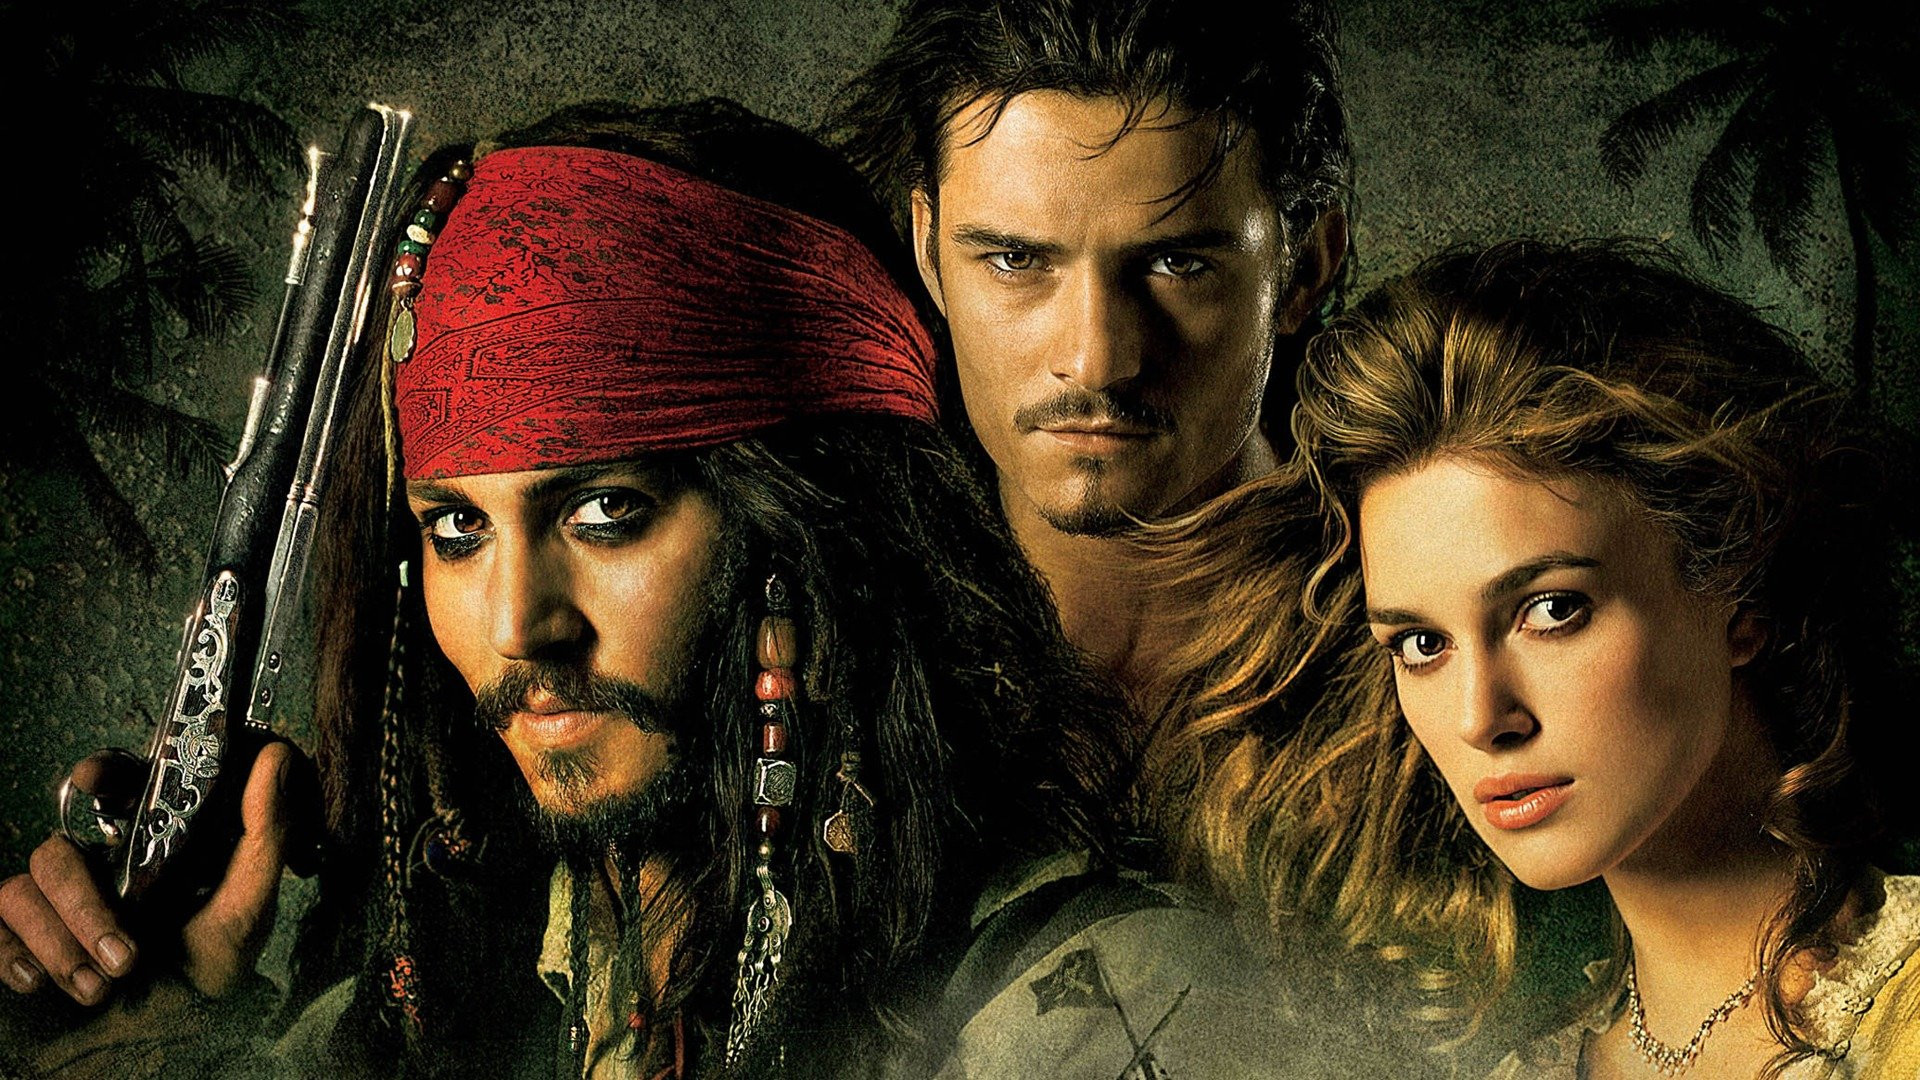 Pirates of the caribbean 2 full movie online